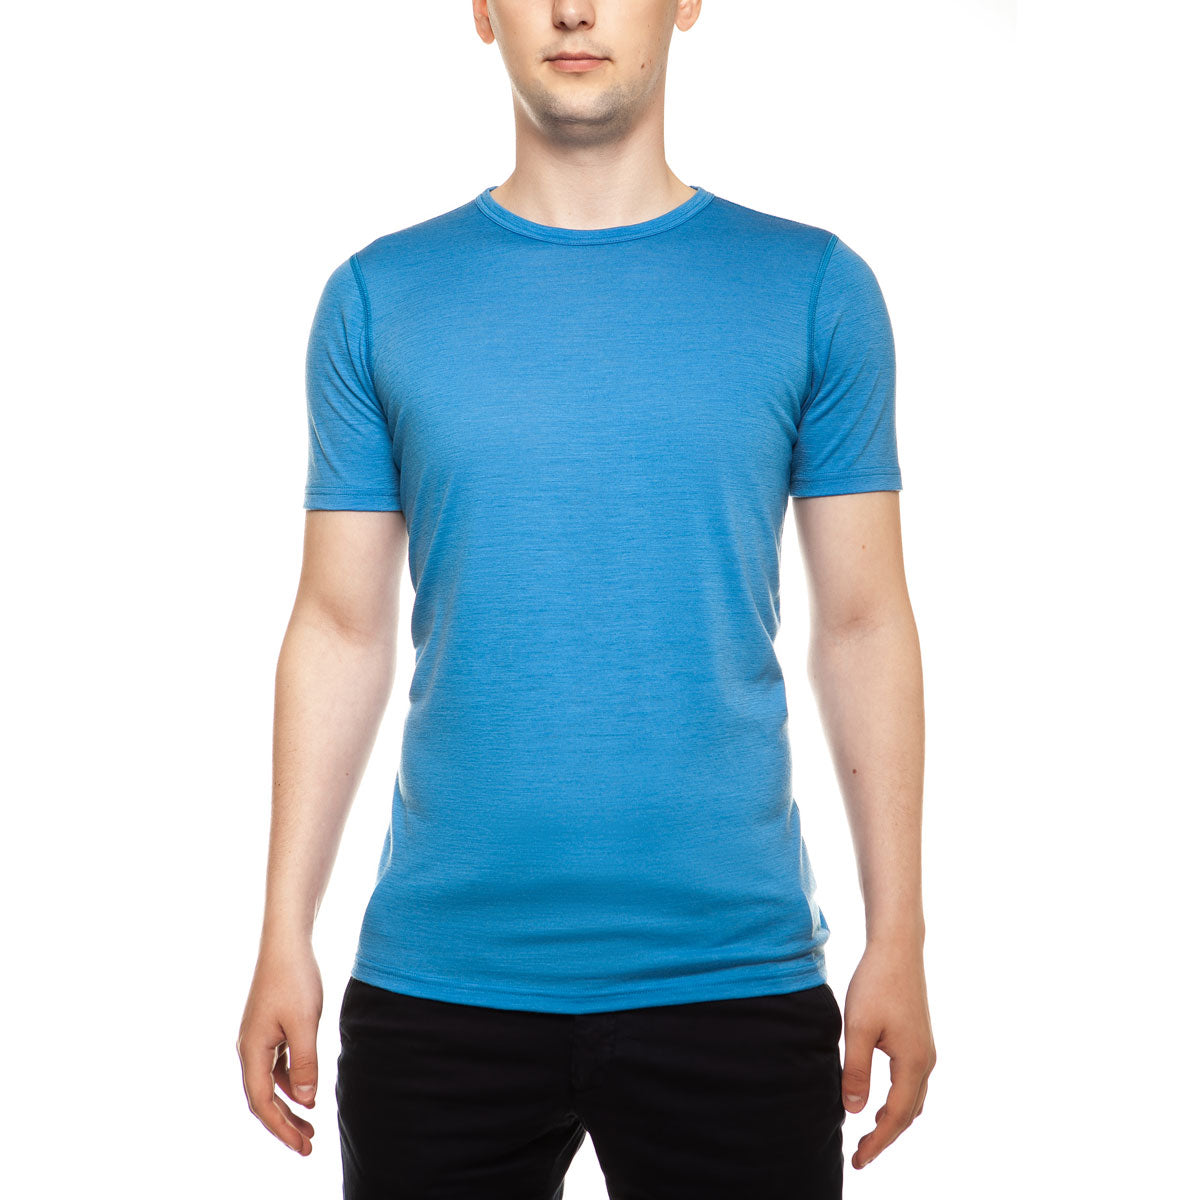 menique Men's Merino 160 Short Sleeve Crew Light Blue Color in nature